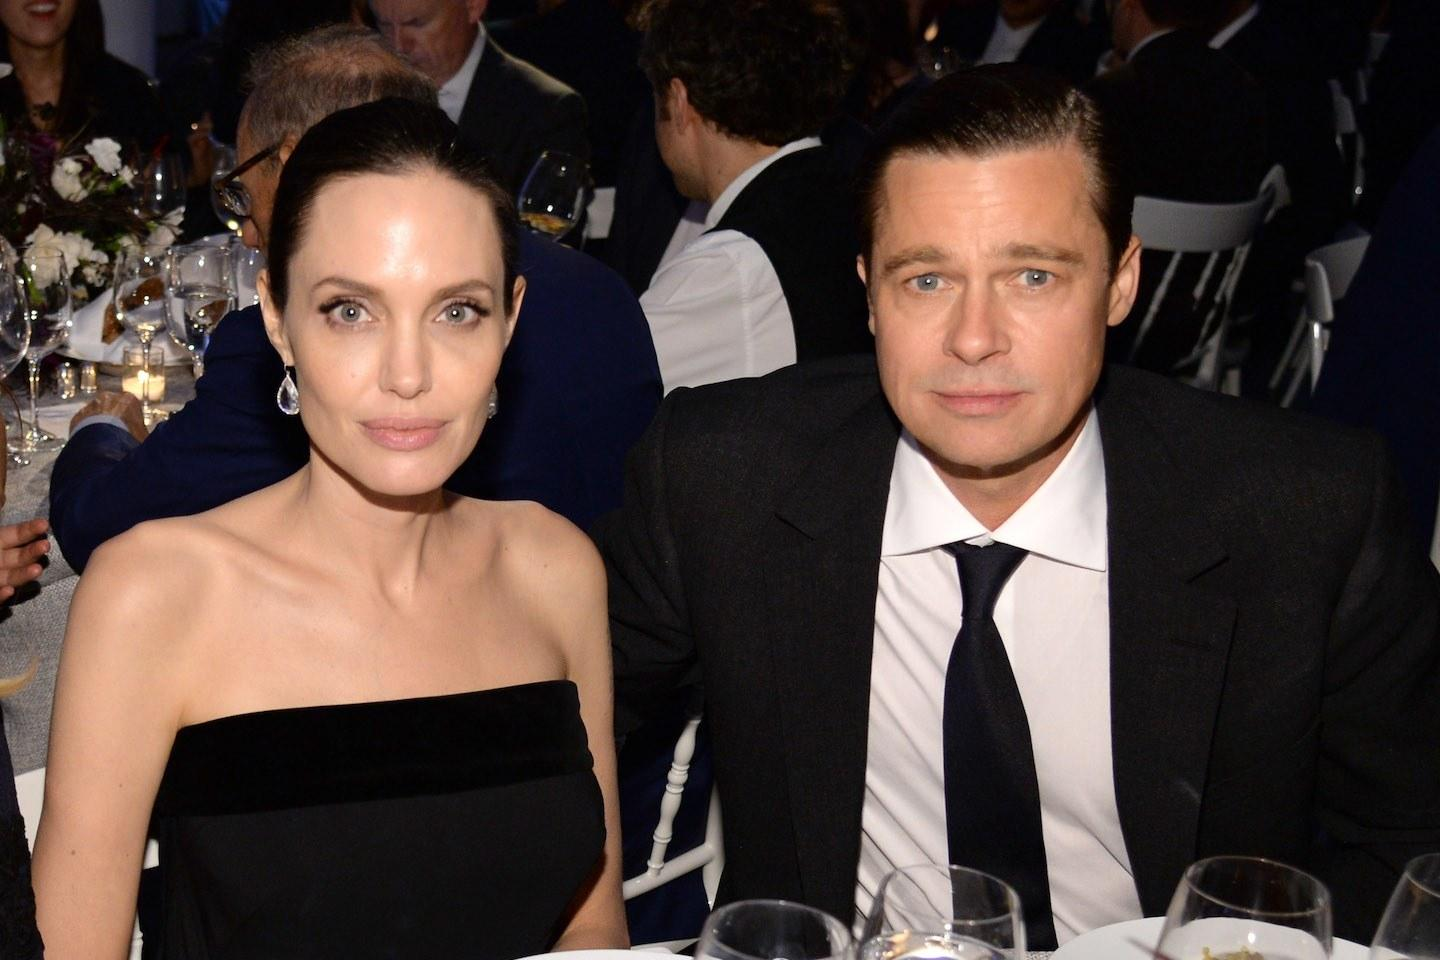 Angelina Jolie And Brad Pitt's Miraval Winery Announces The Release Of A New Wine Despite Their Bitter Divorce